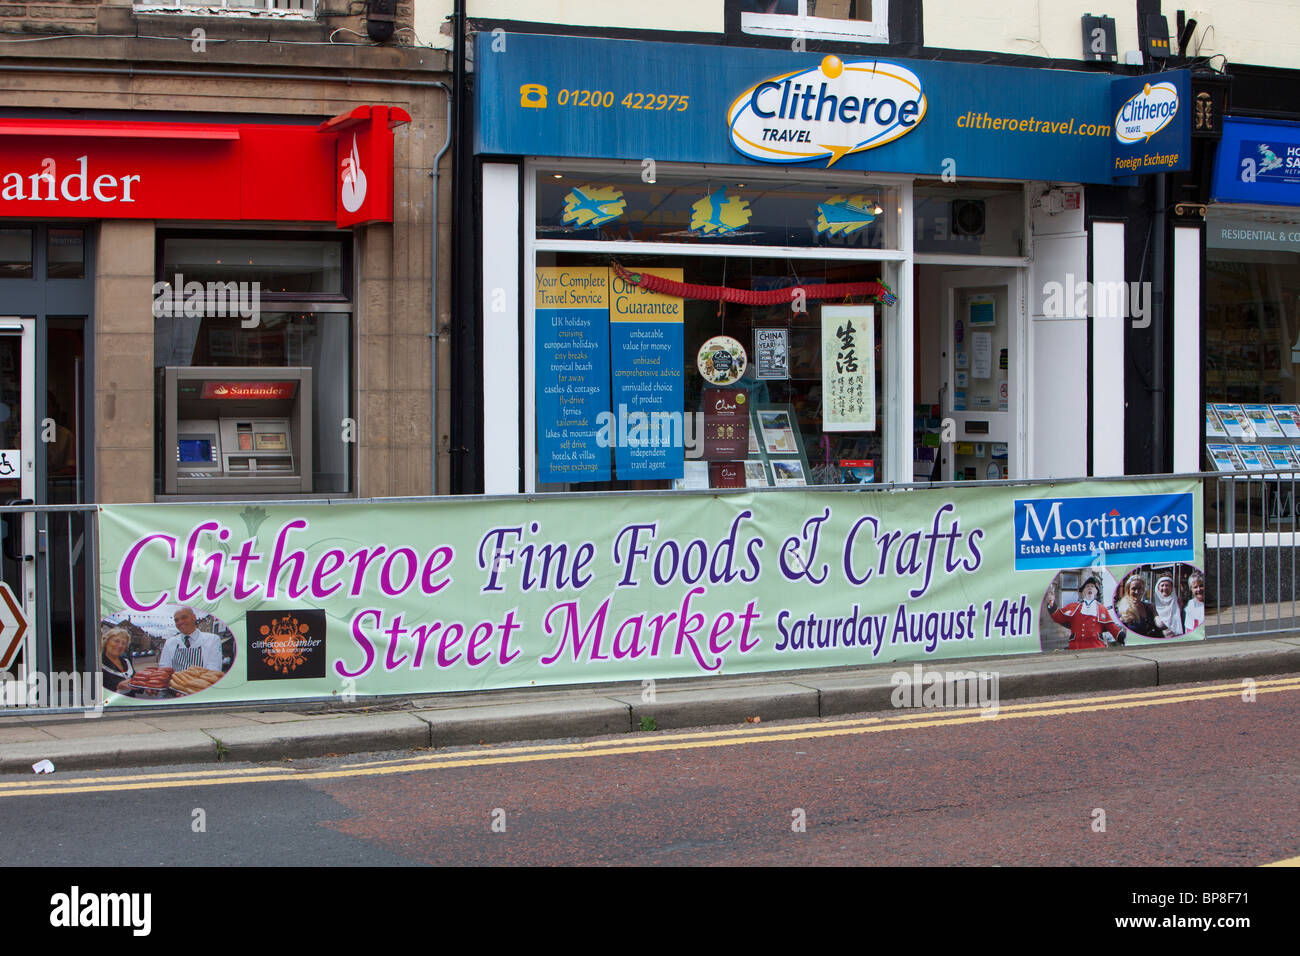 An advert for a street market and food fair in Clitheroe, Lancashire, UK. - Stock Image